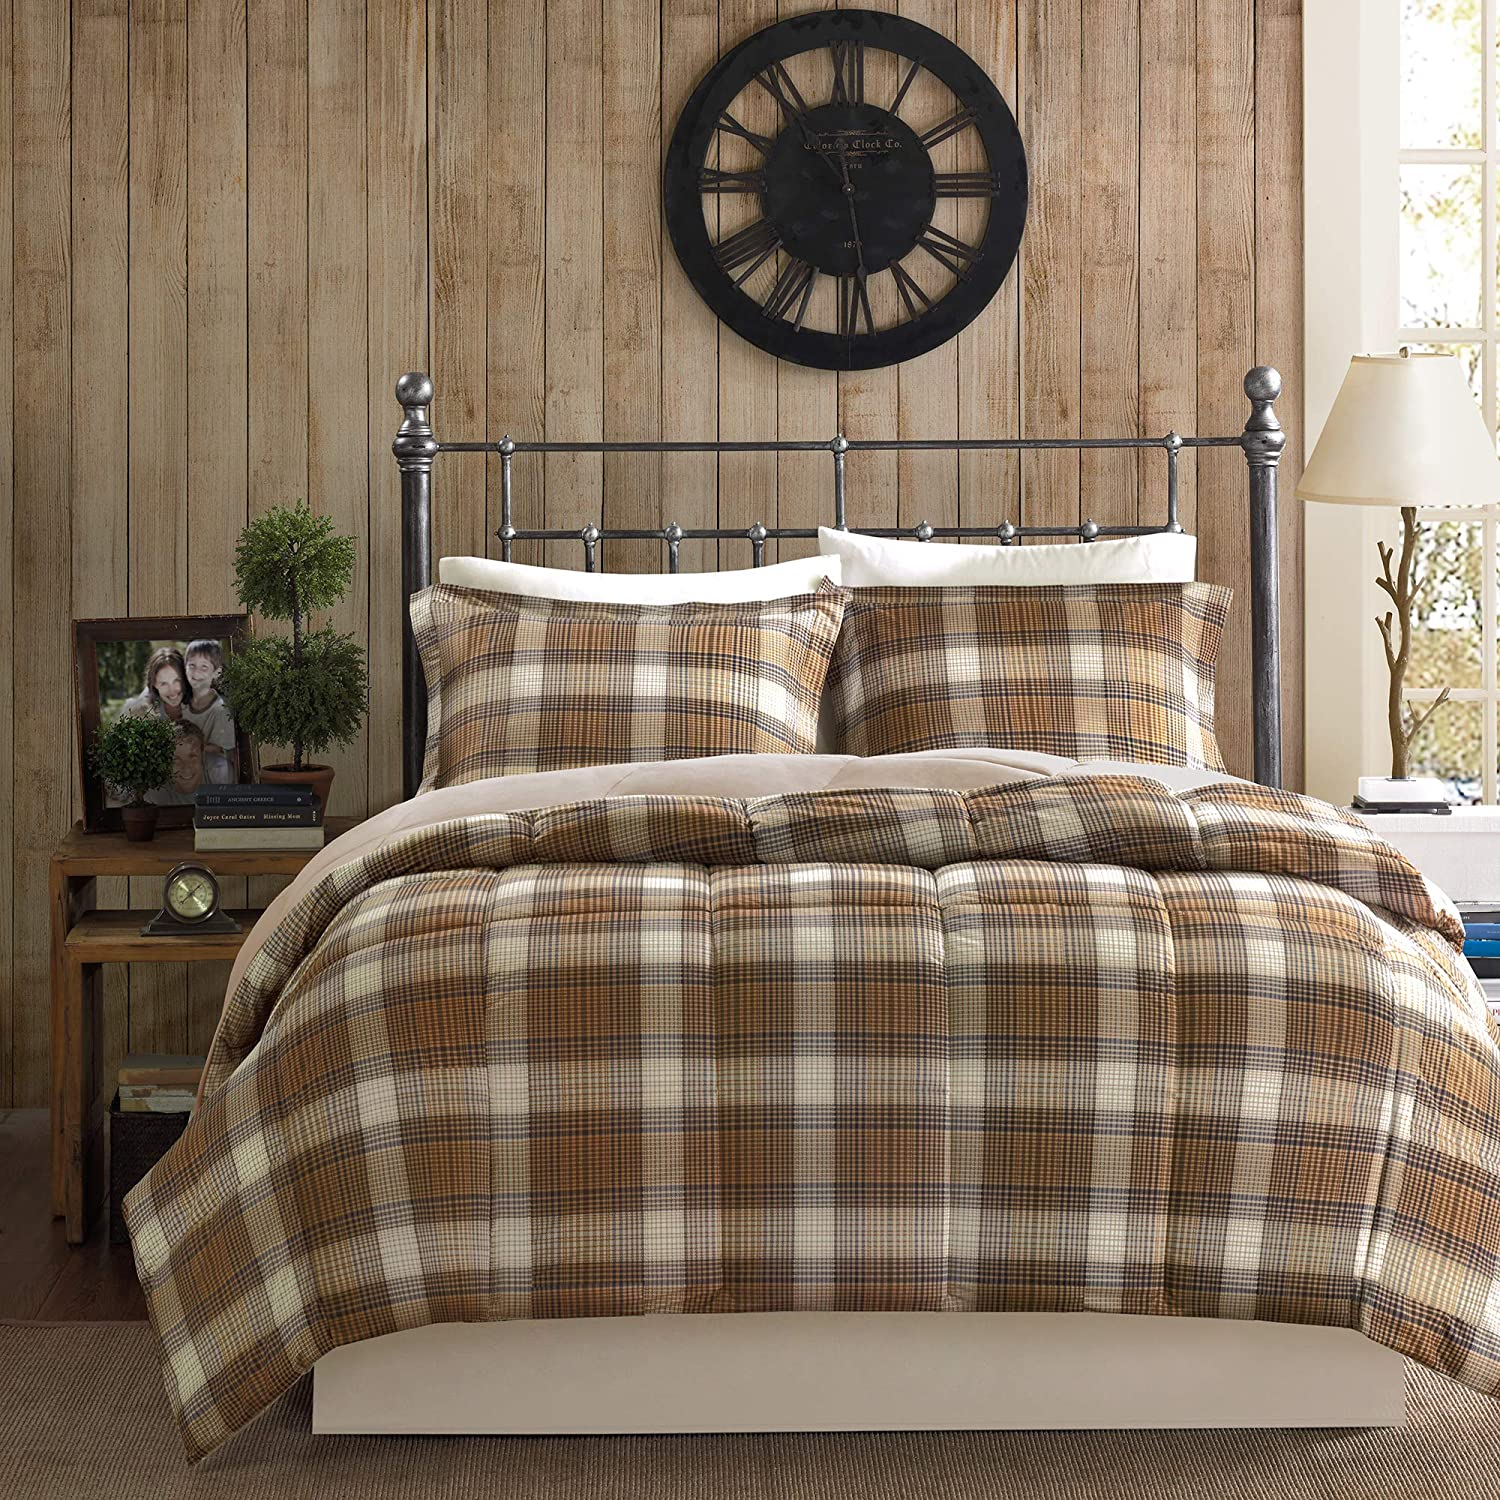 Woolrich Lumberjack Twin Size Bed Comforter Set - Brown, Khaki, Farmouse, Rustic Plaid – 2 Pieces Bedding Sets – Softspun Flannel Bedroom Comforters